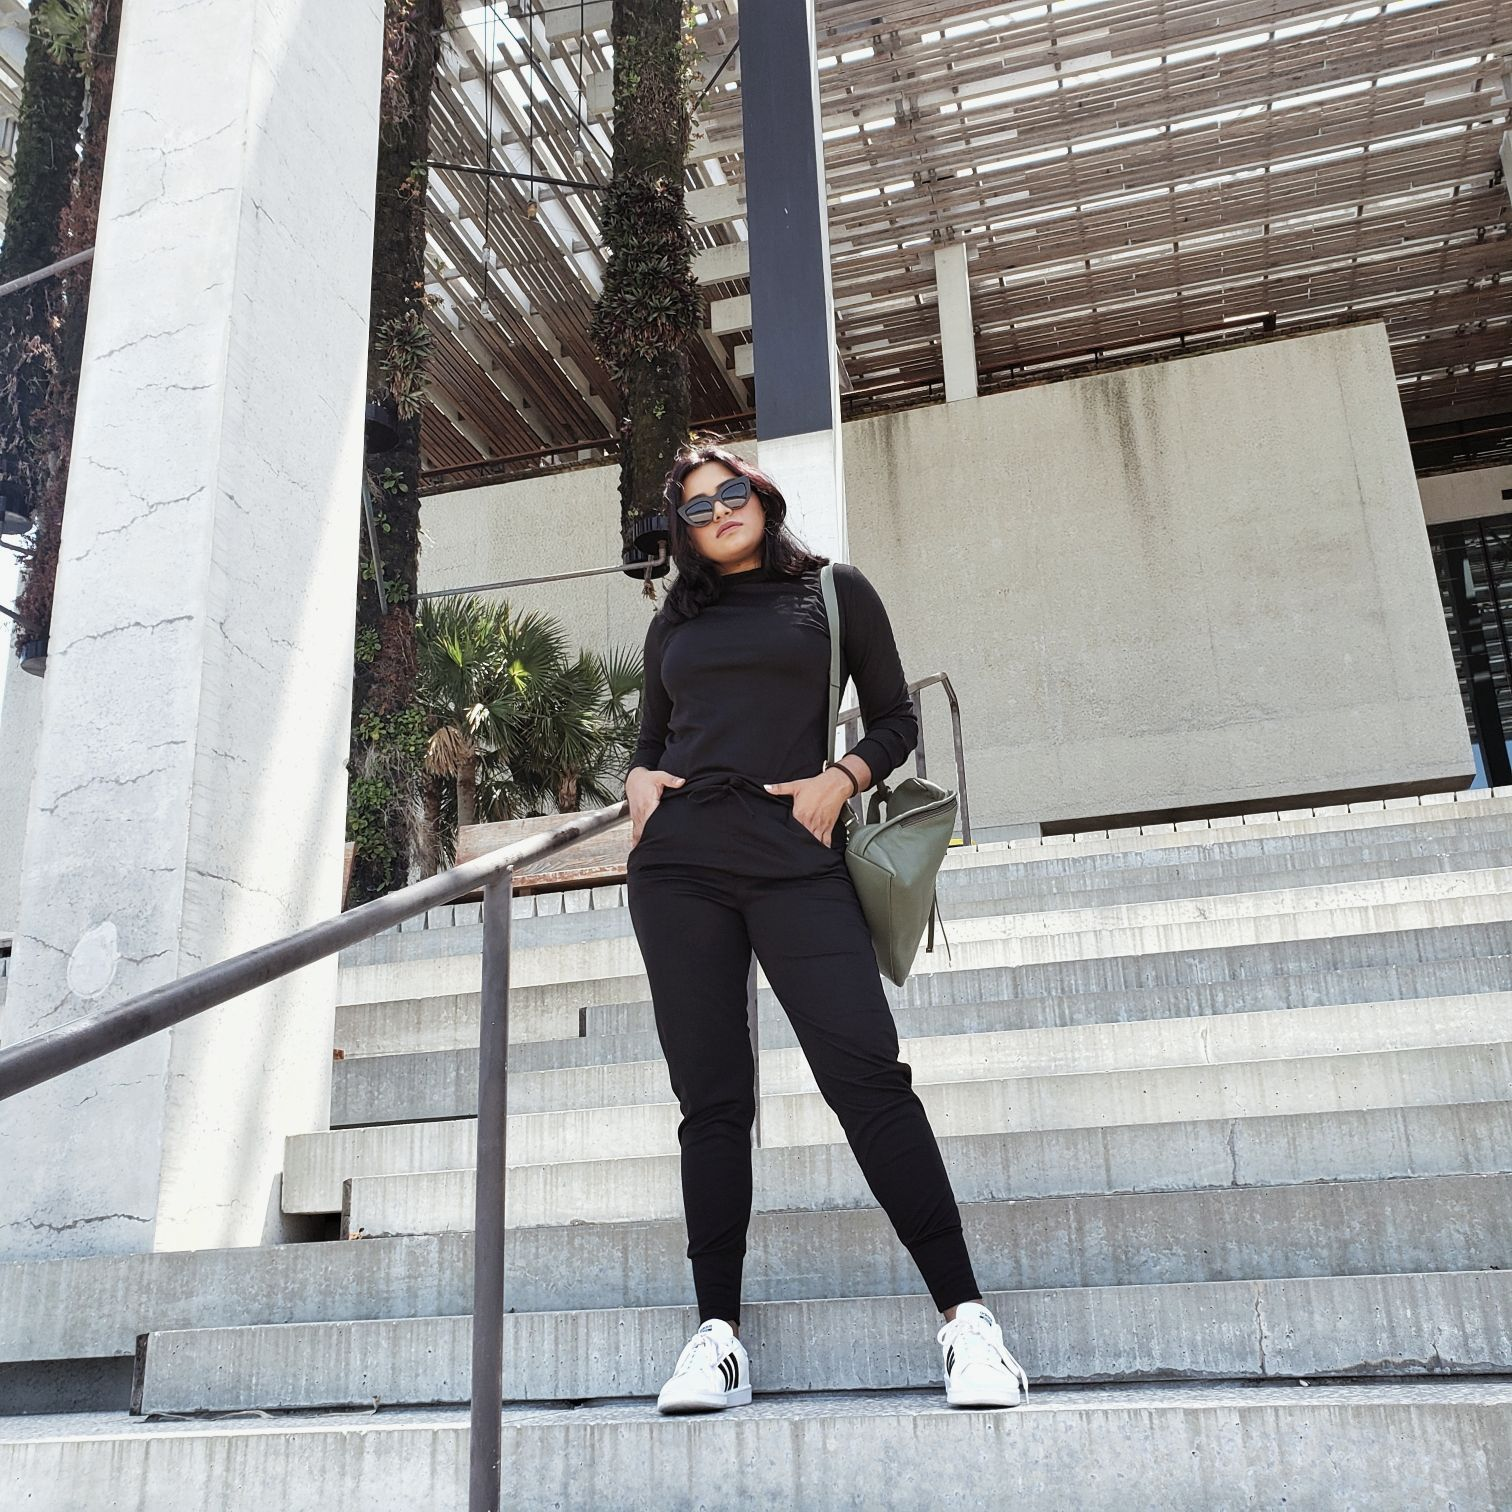 Chic Black Long Sleeve Loungewear Set Femme Luxe Finery All Black Outfit Afroza Khan Miami Fashion Blogger